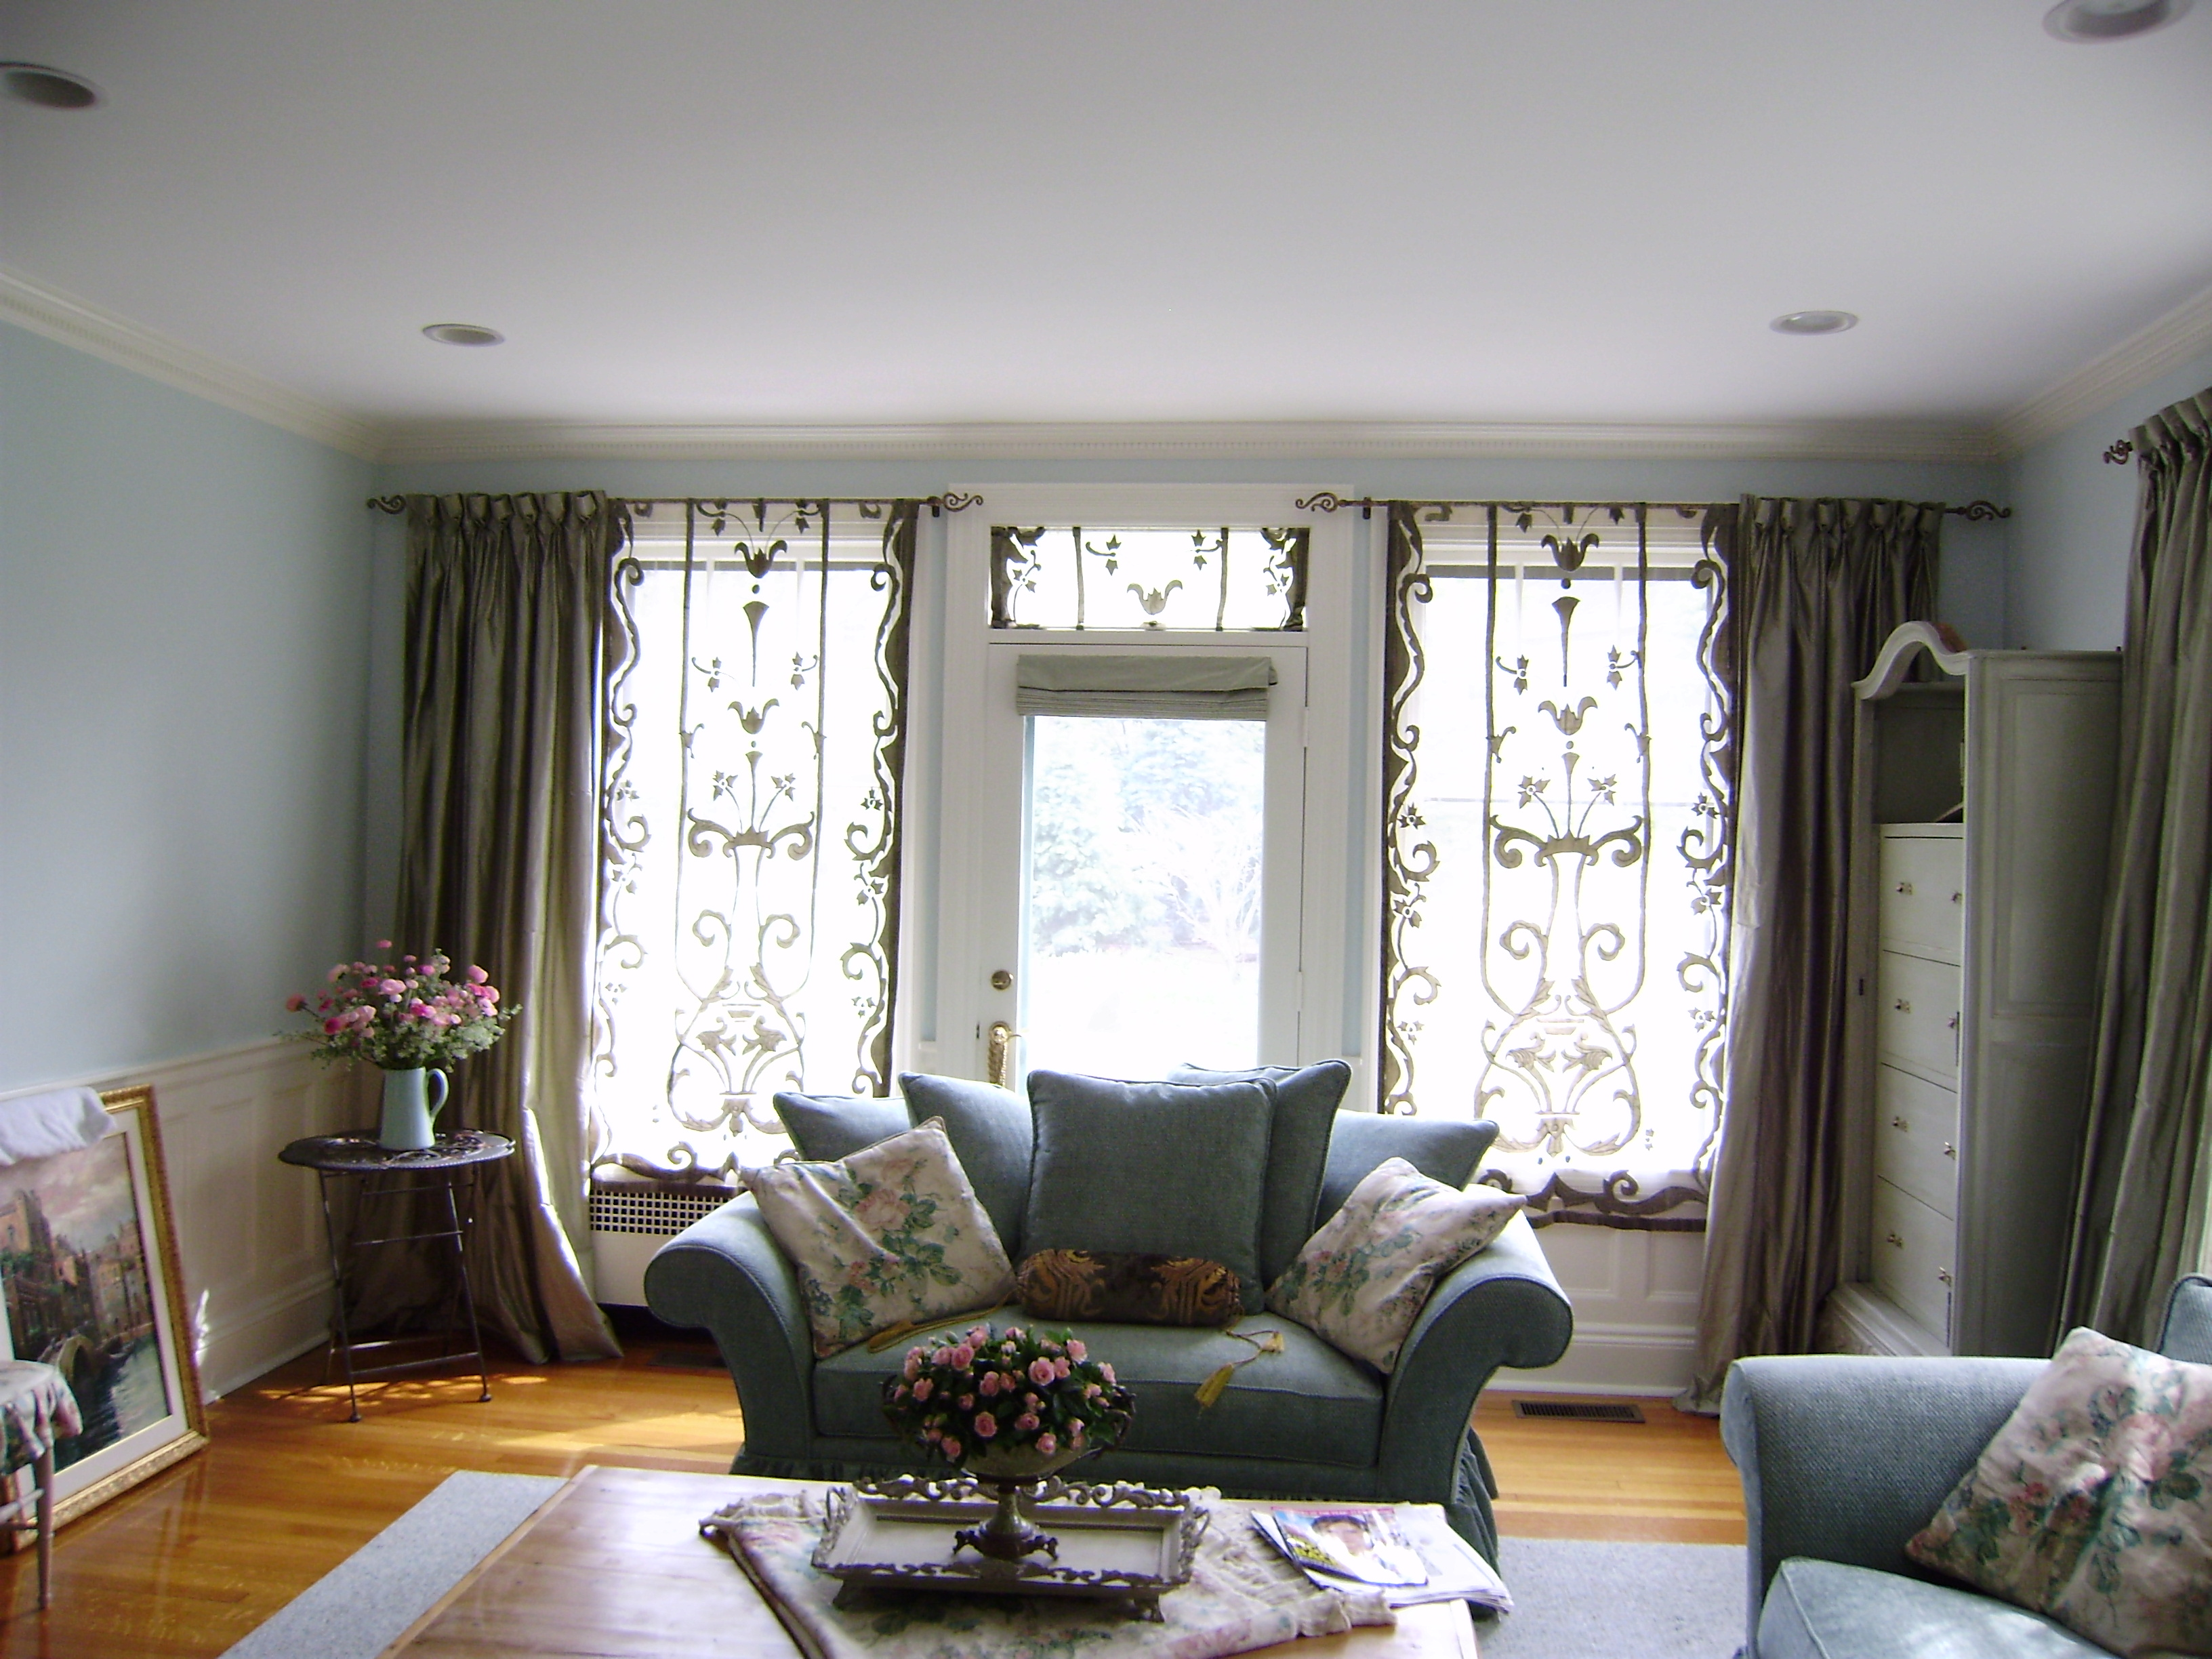 window treatment ideas for family room glamorous best 25+ family